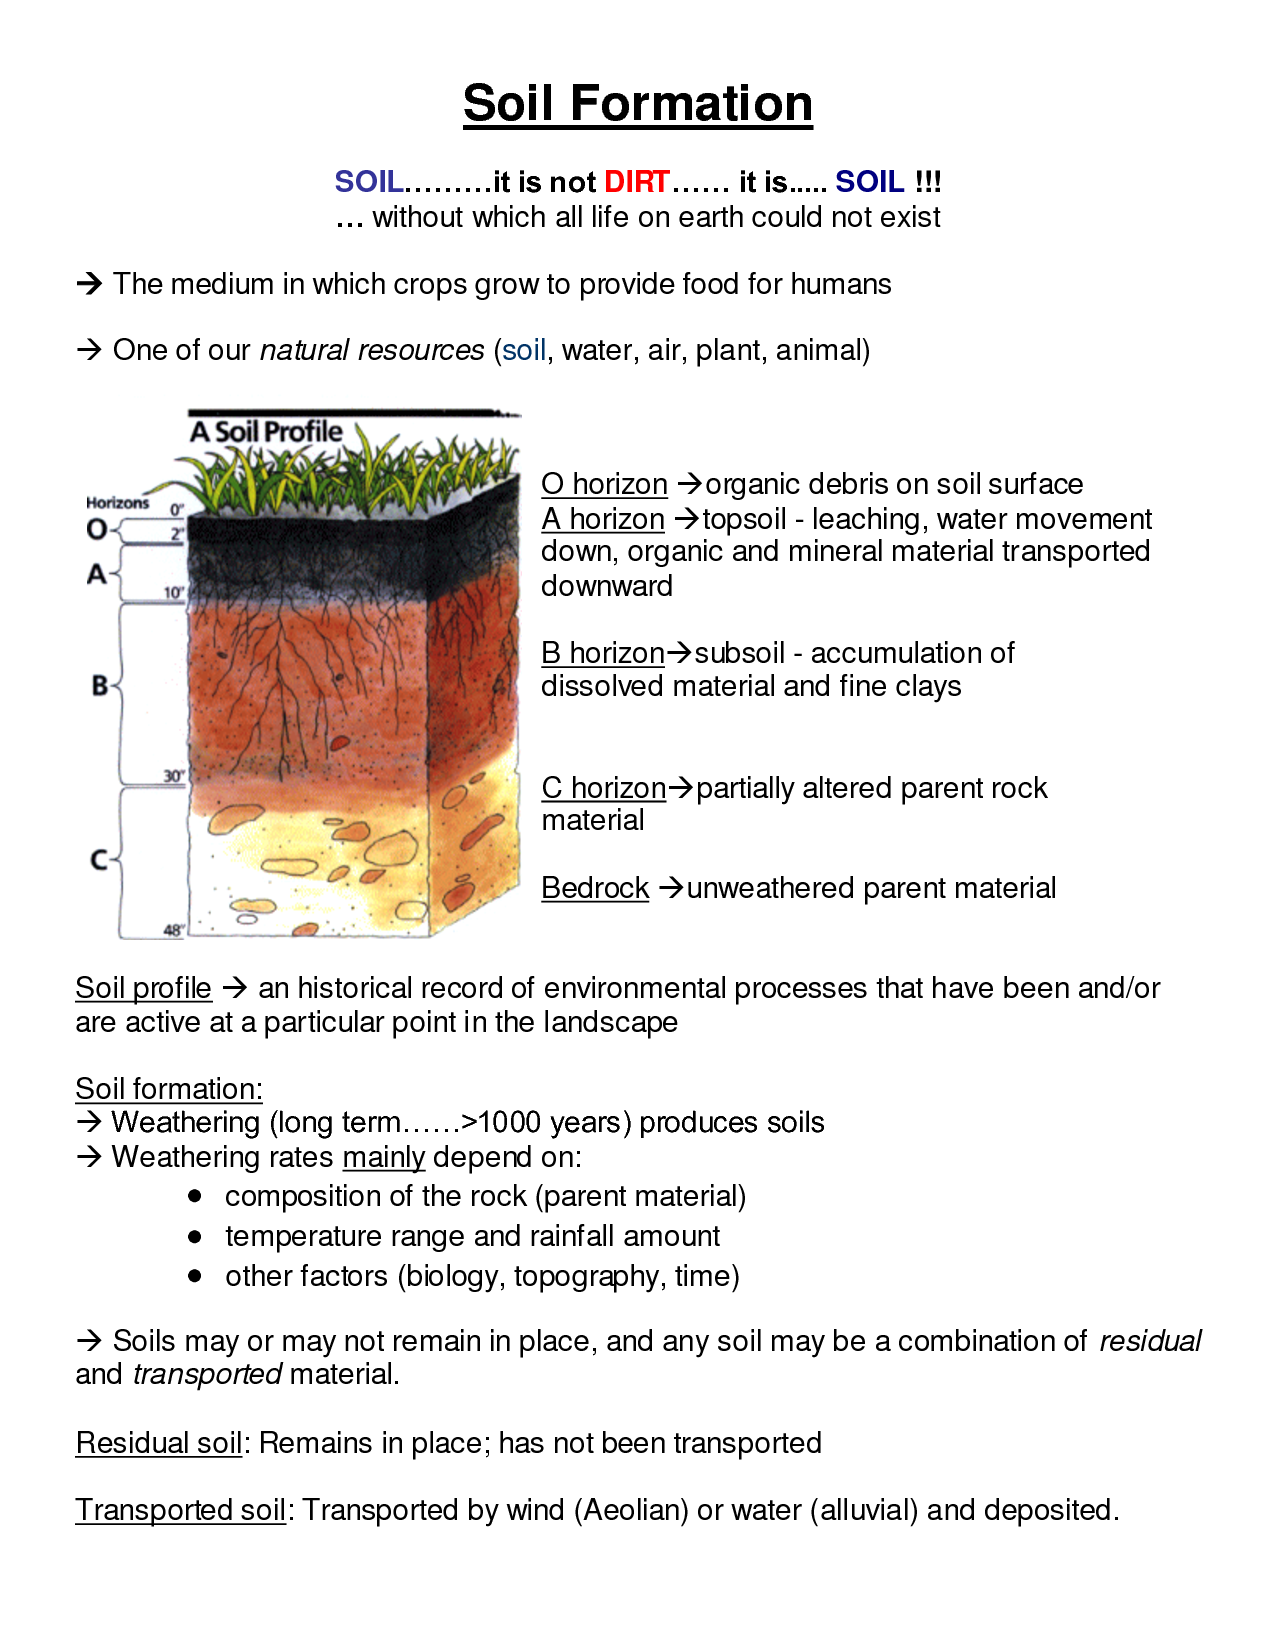 Worksheets Soil Horizons Worksheet collection of soil horizon worksheet sharebrowse sharebrowse